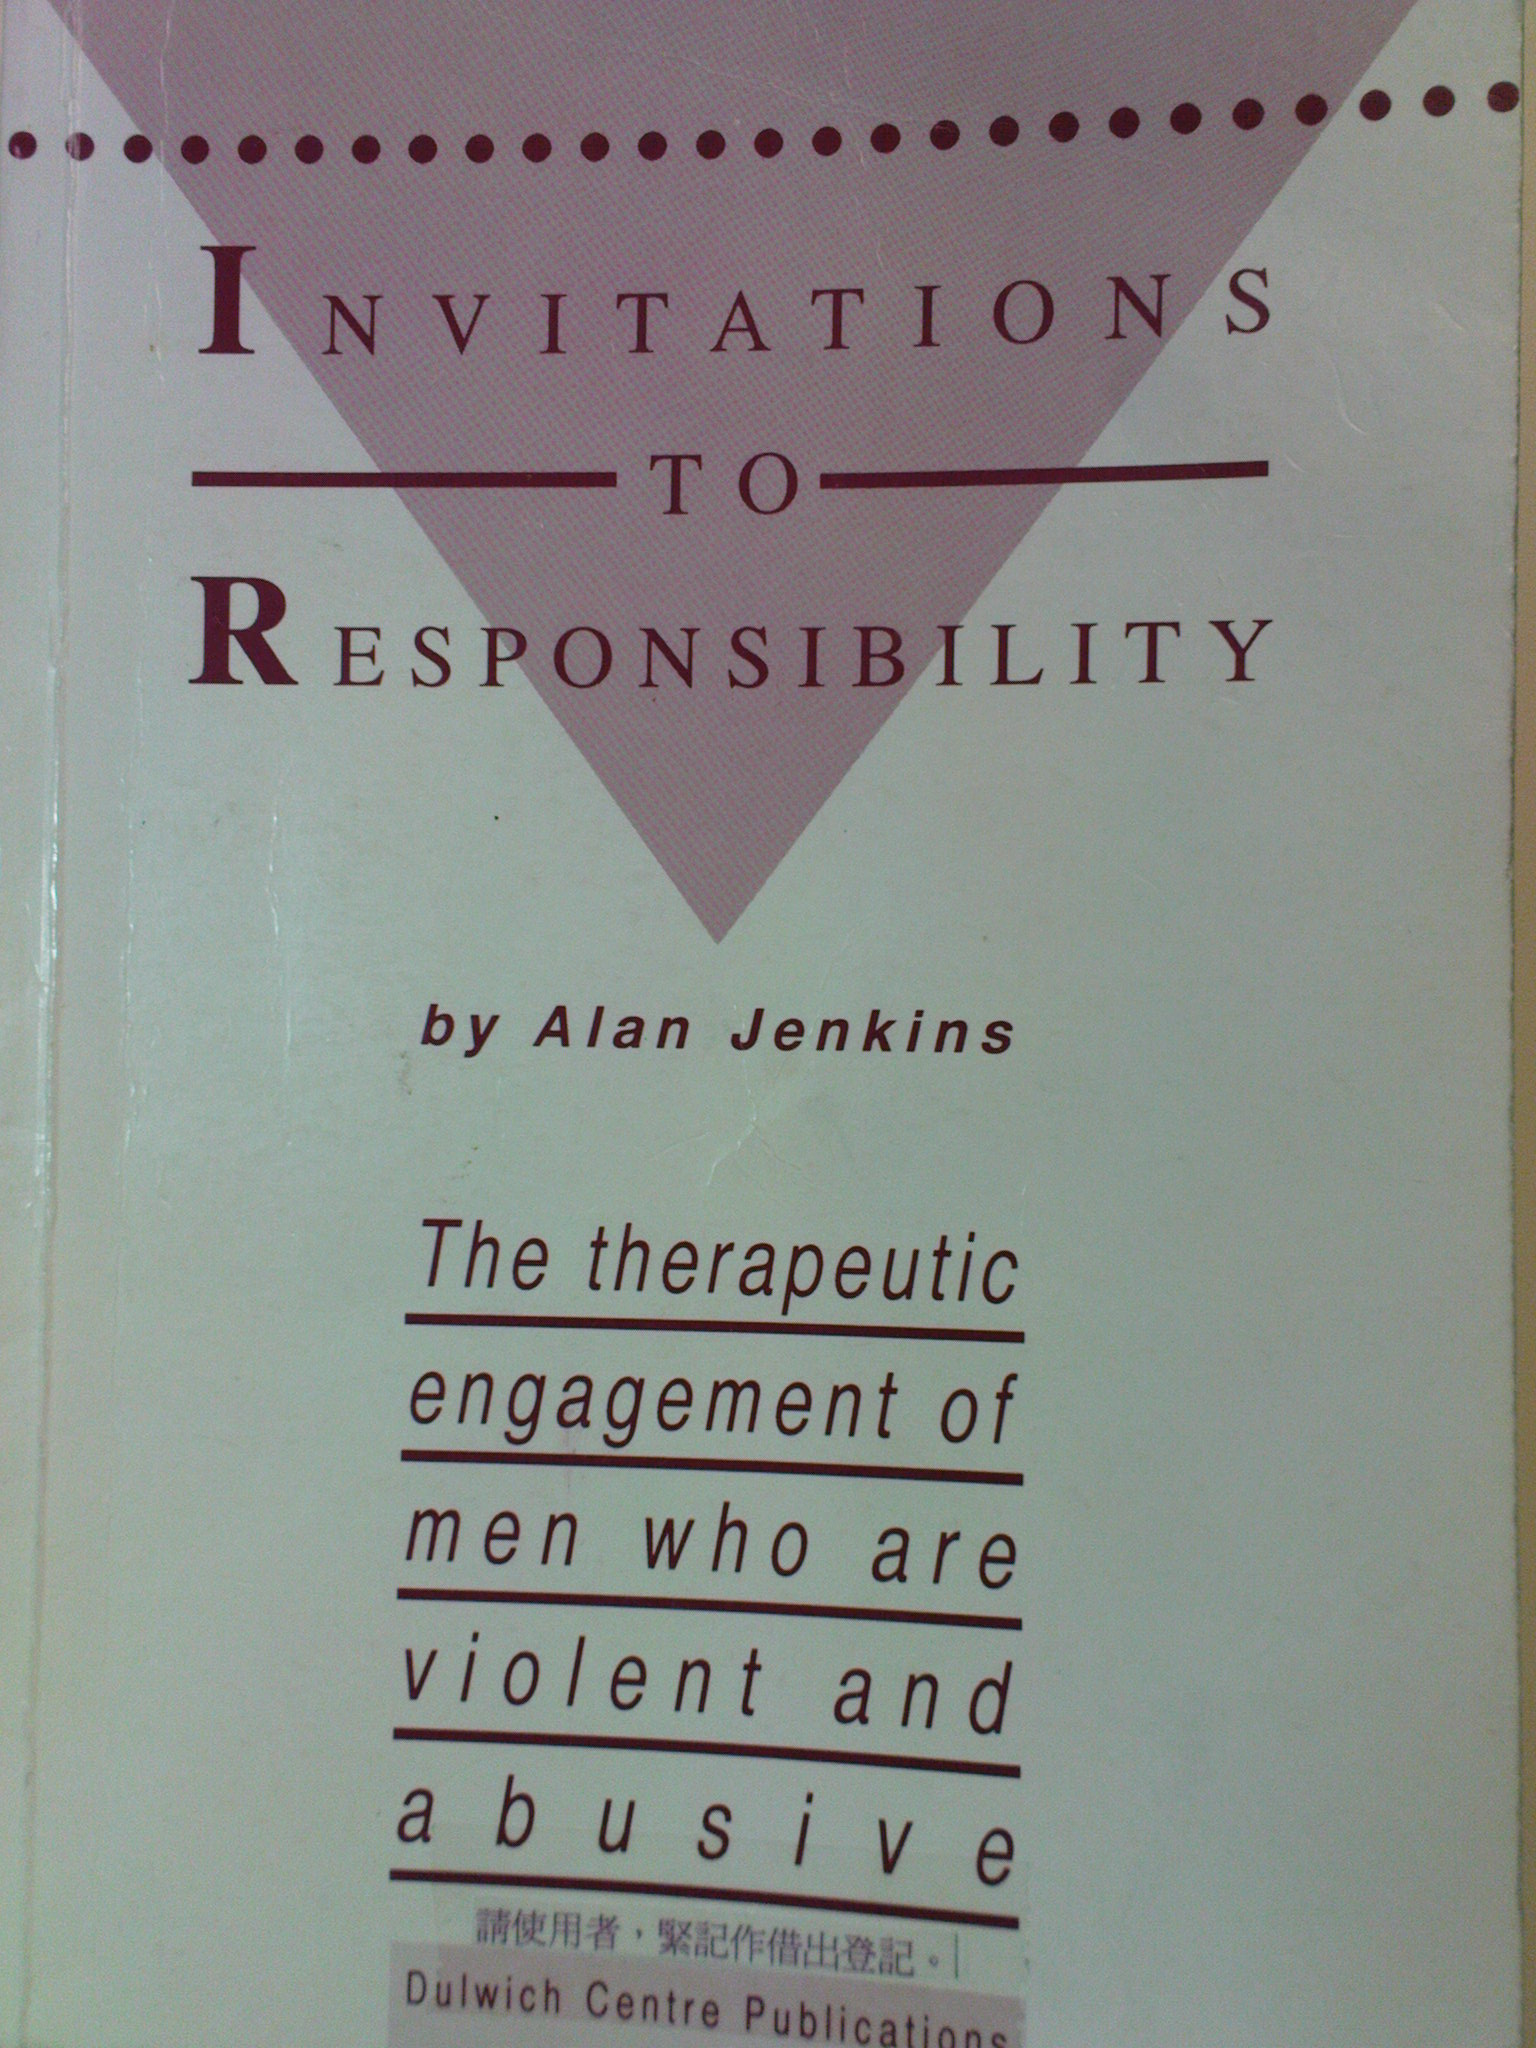 Invitations to Responsibility - the therapeutic engagement of men who are violent and abusive